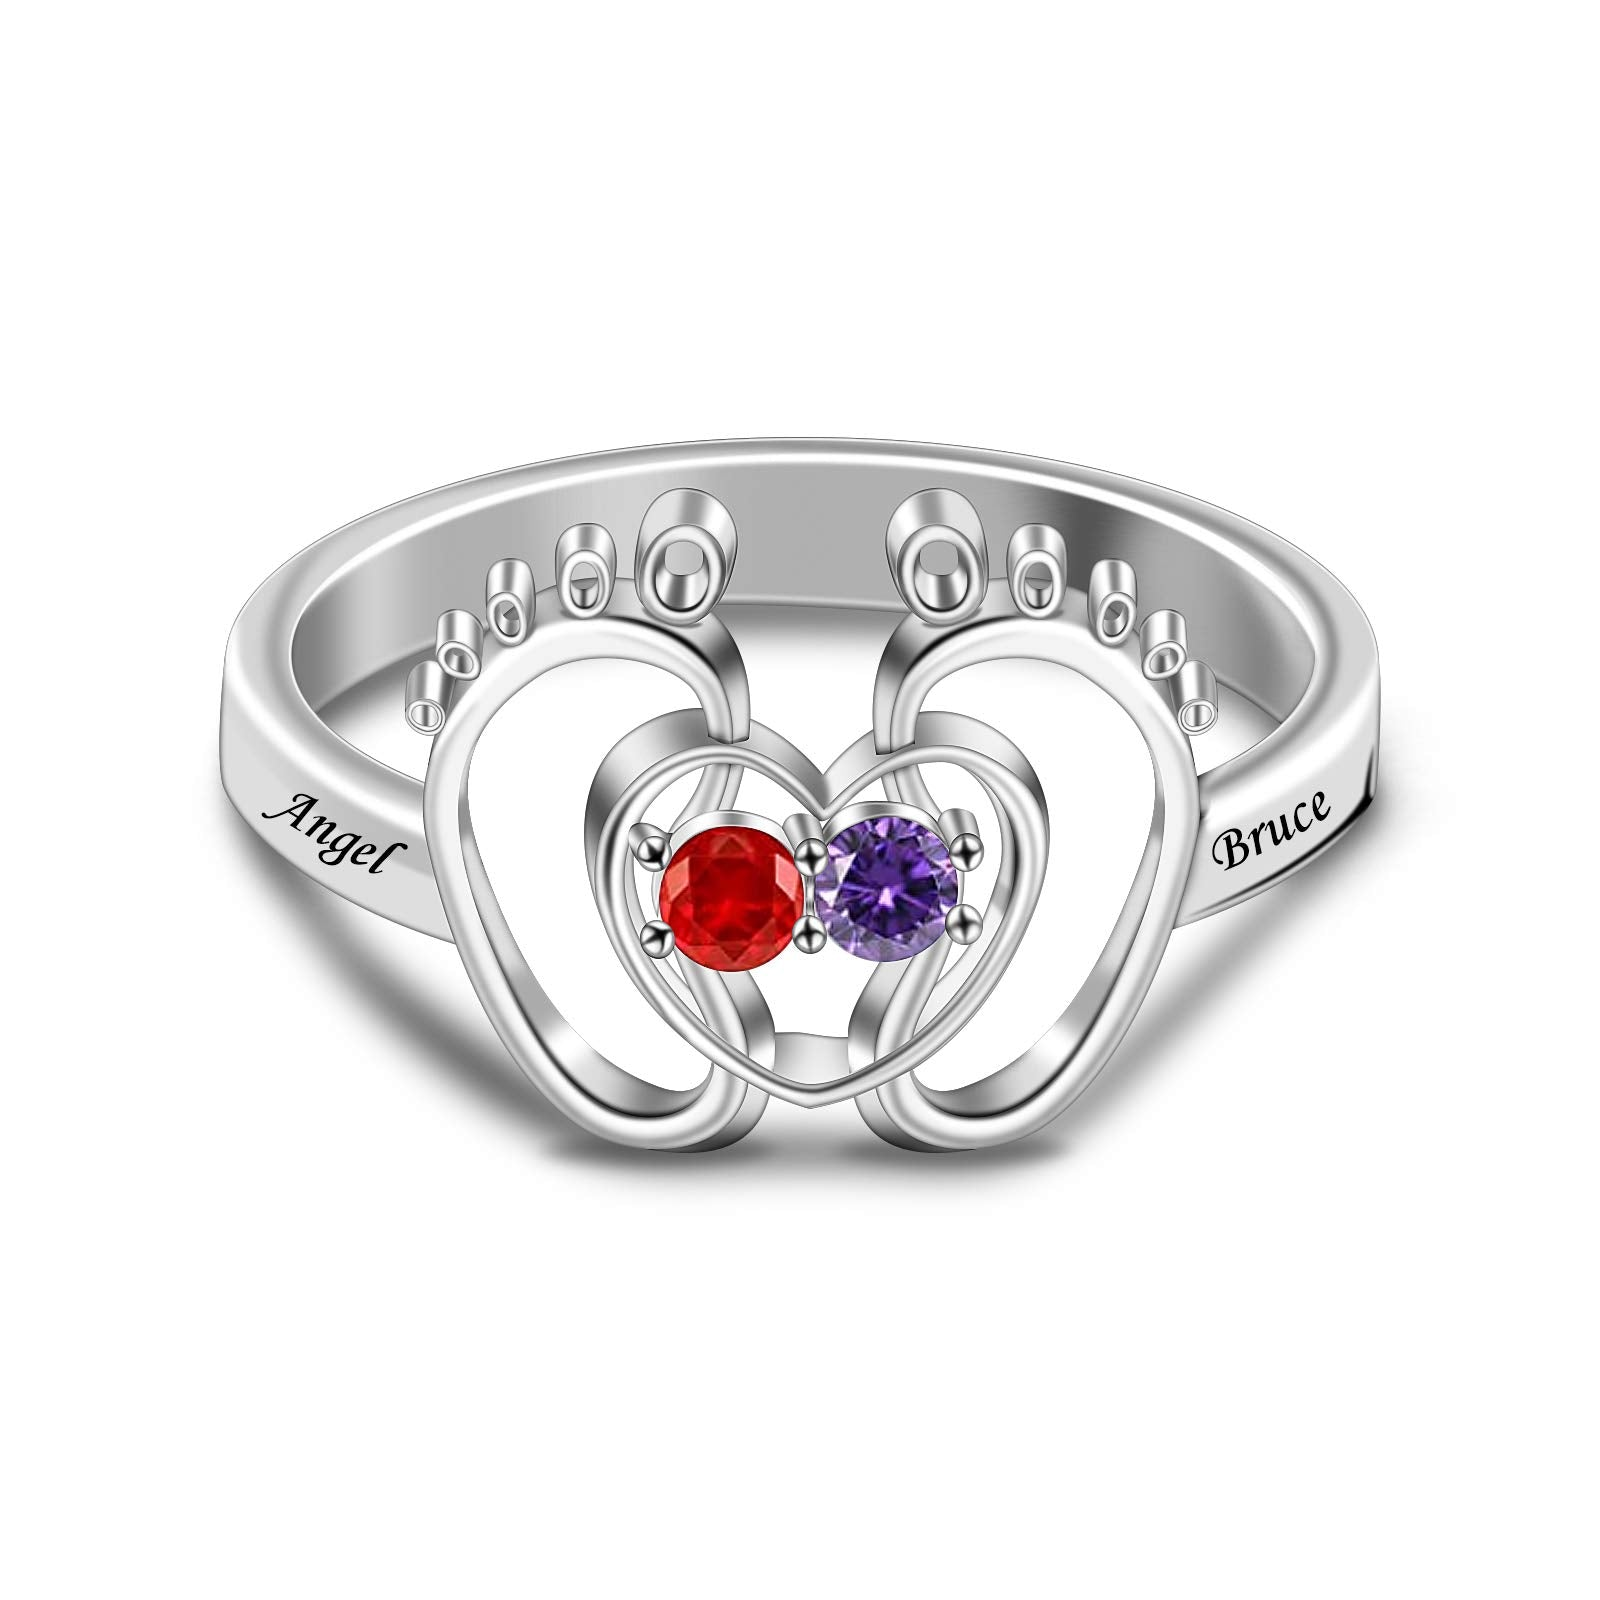 2 Birthstone 2 Names Baby Feet Heart Personalized Mother Ring